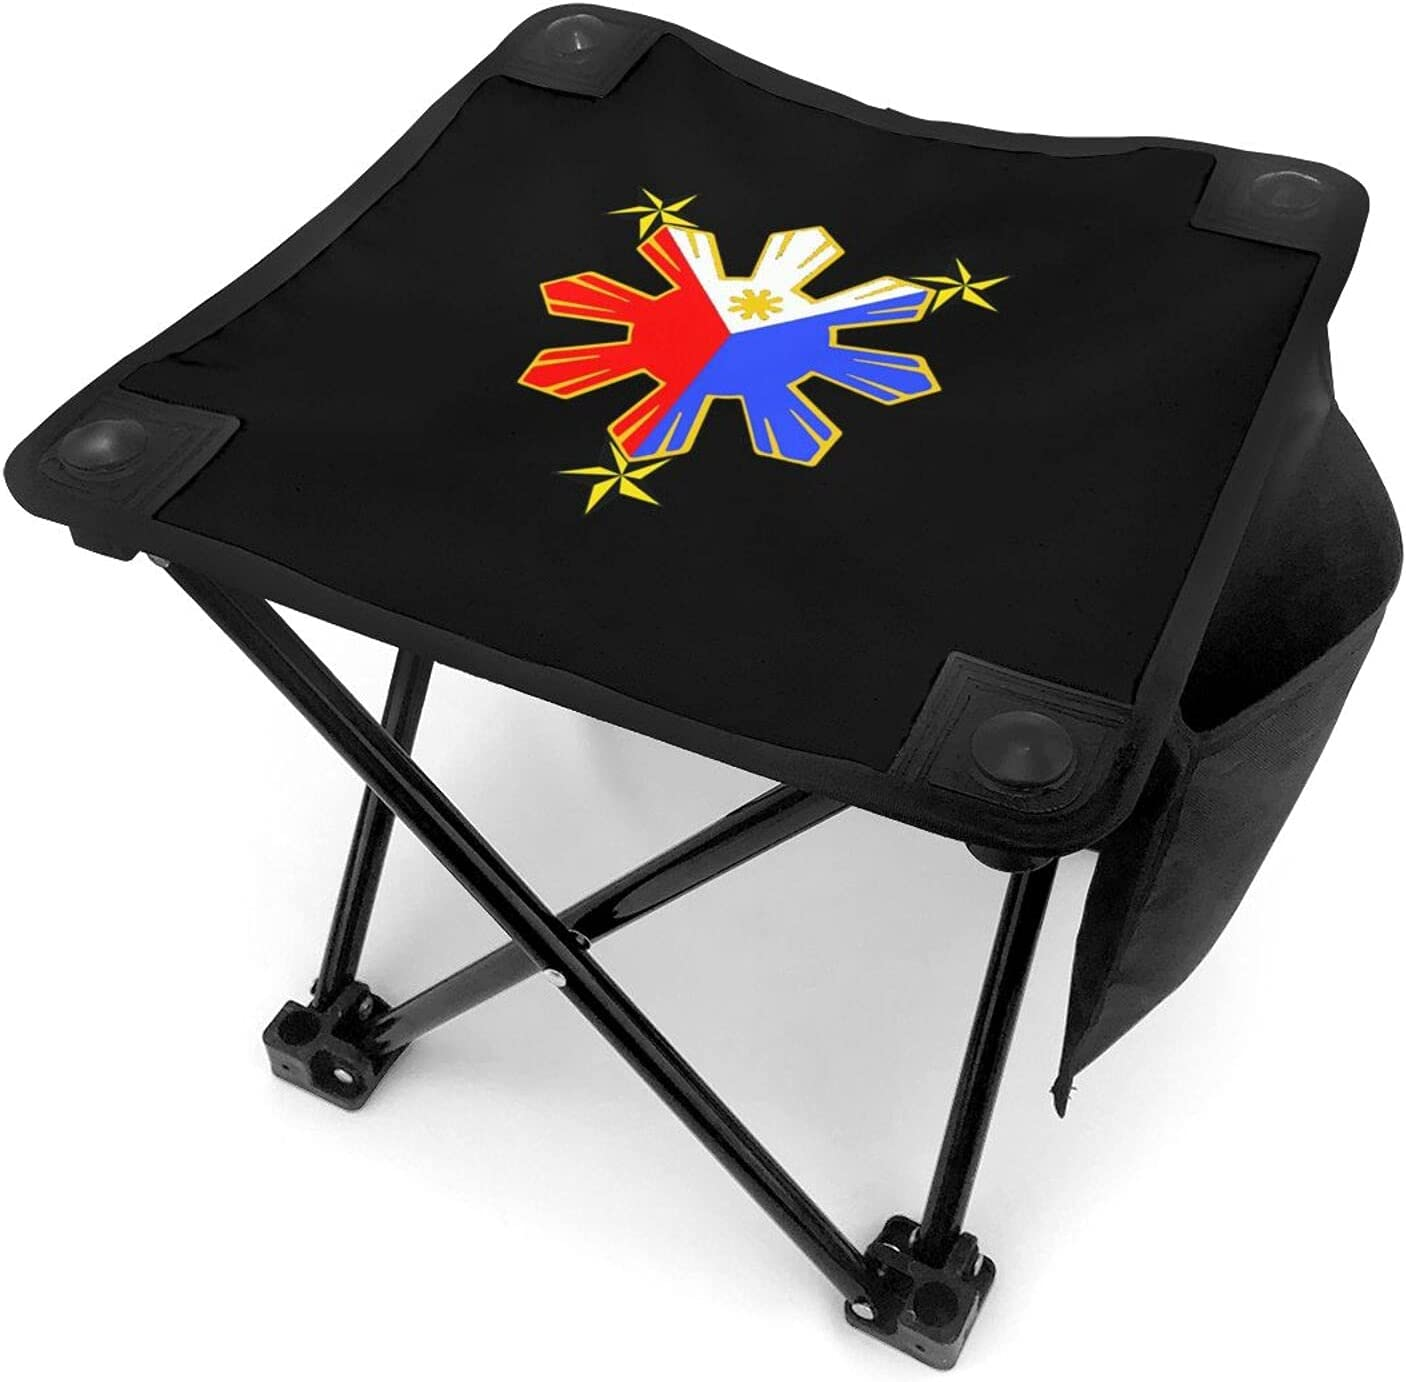 Pinoy Filipino Flag Folding Camping Stool Portable Fishing Slacker Chair Mini Foldable Stool for Outdoor Backpacking Hiking BBQ Picnic Travel Gardening and Beach with Carry Bag